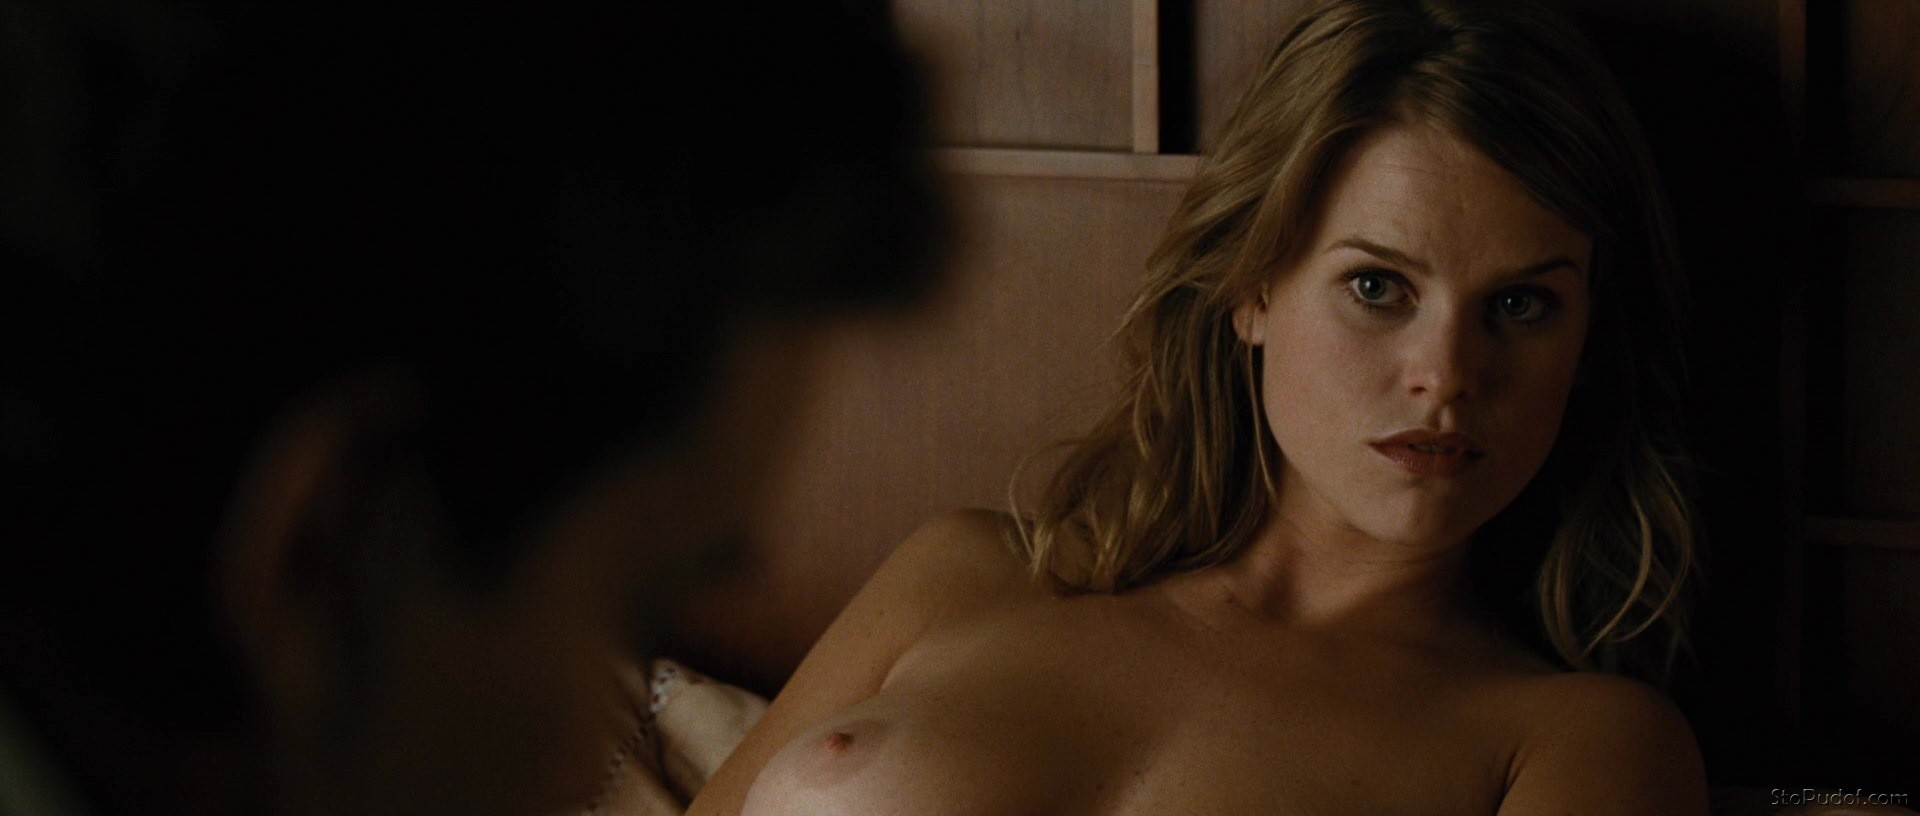 pictures of nude Alice Eve - UkPhotoSafari